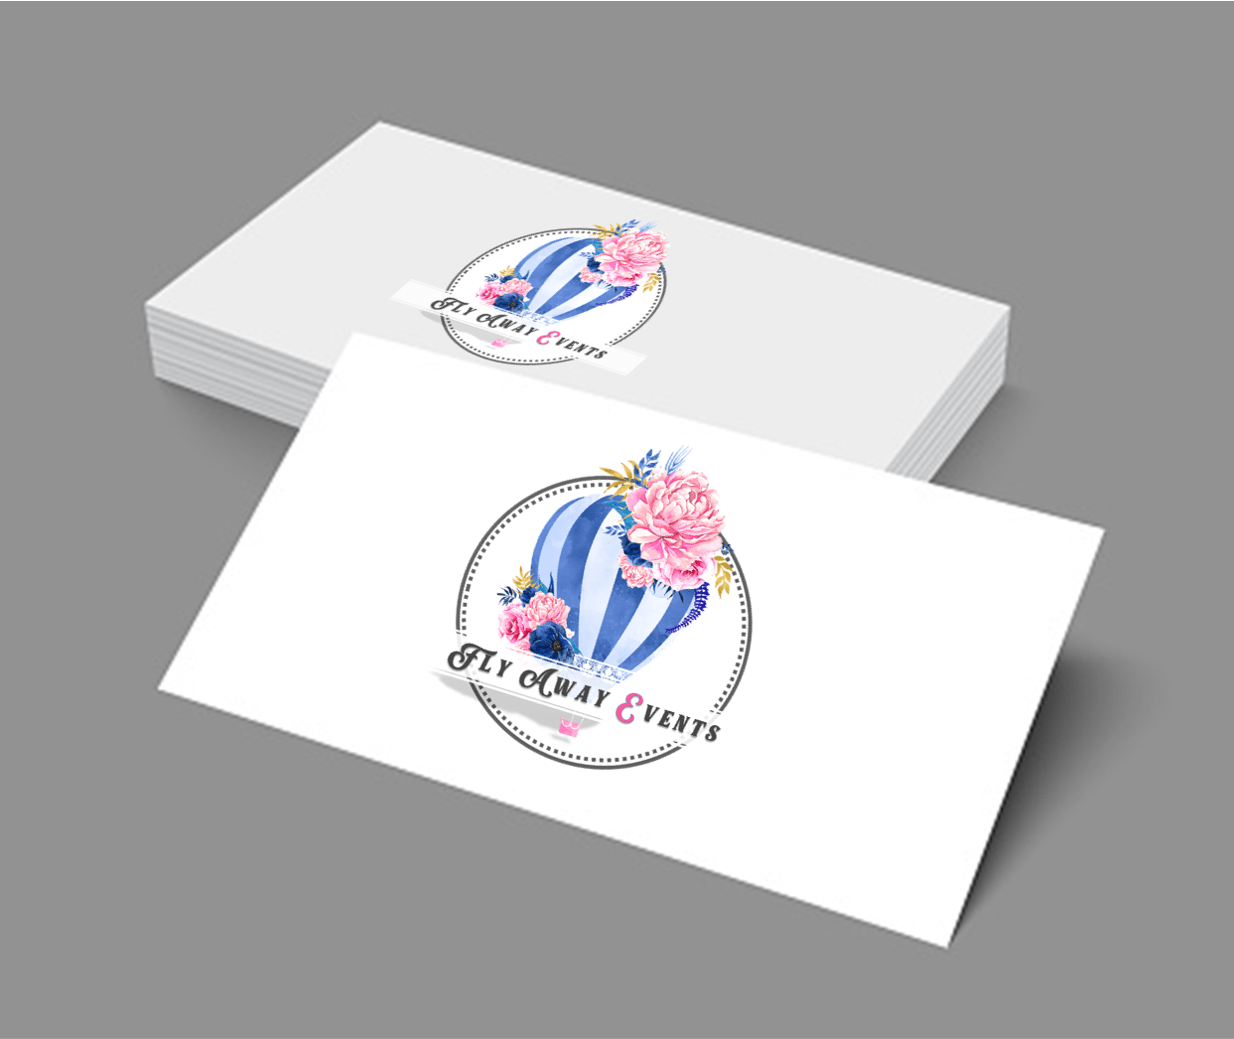 Events Company Business Cards